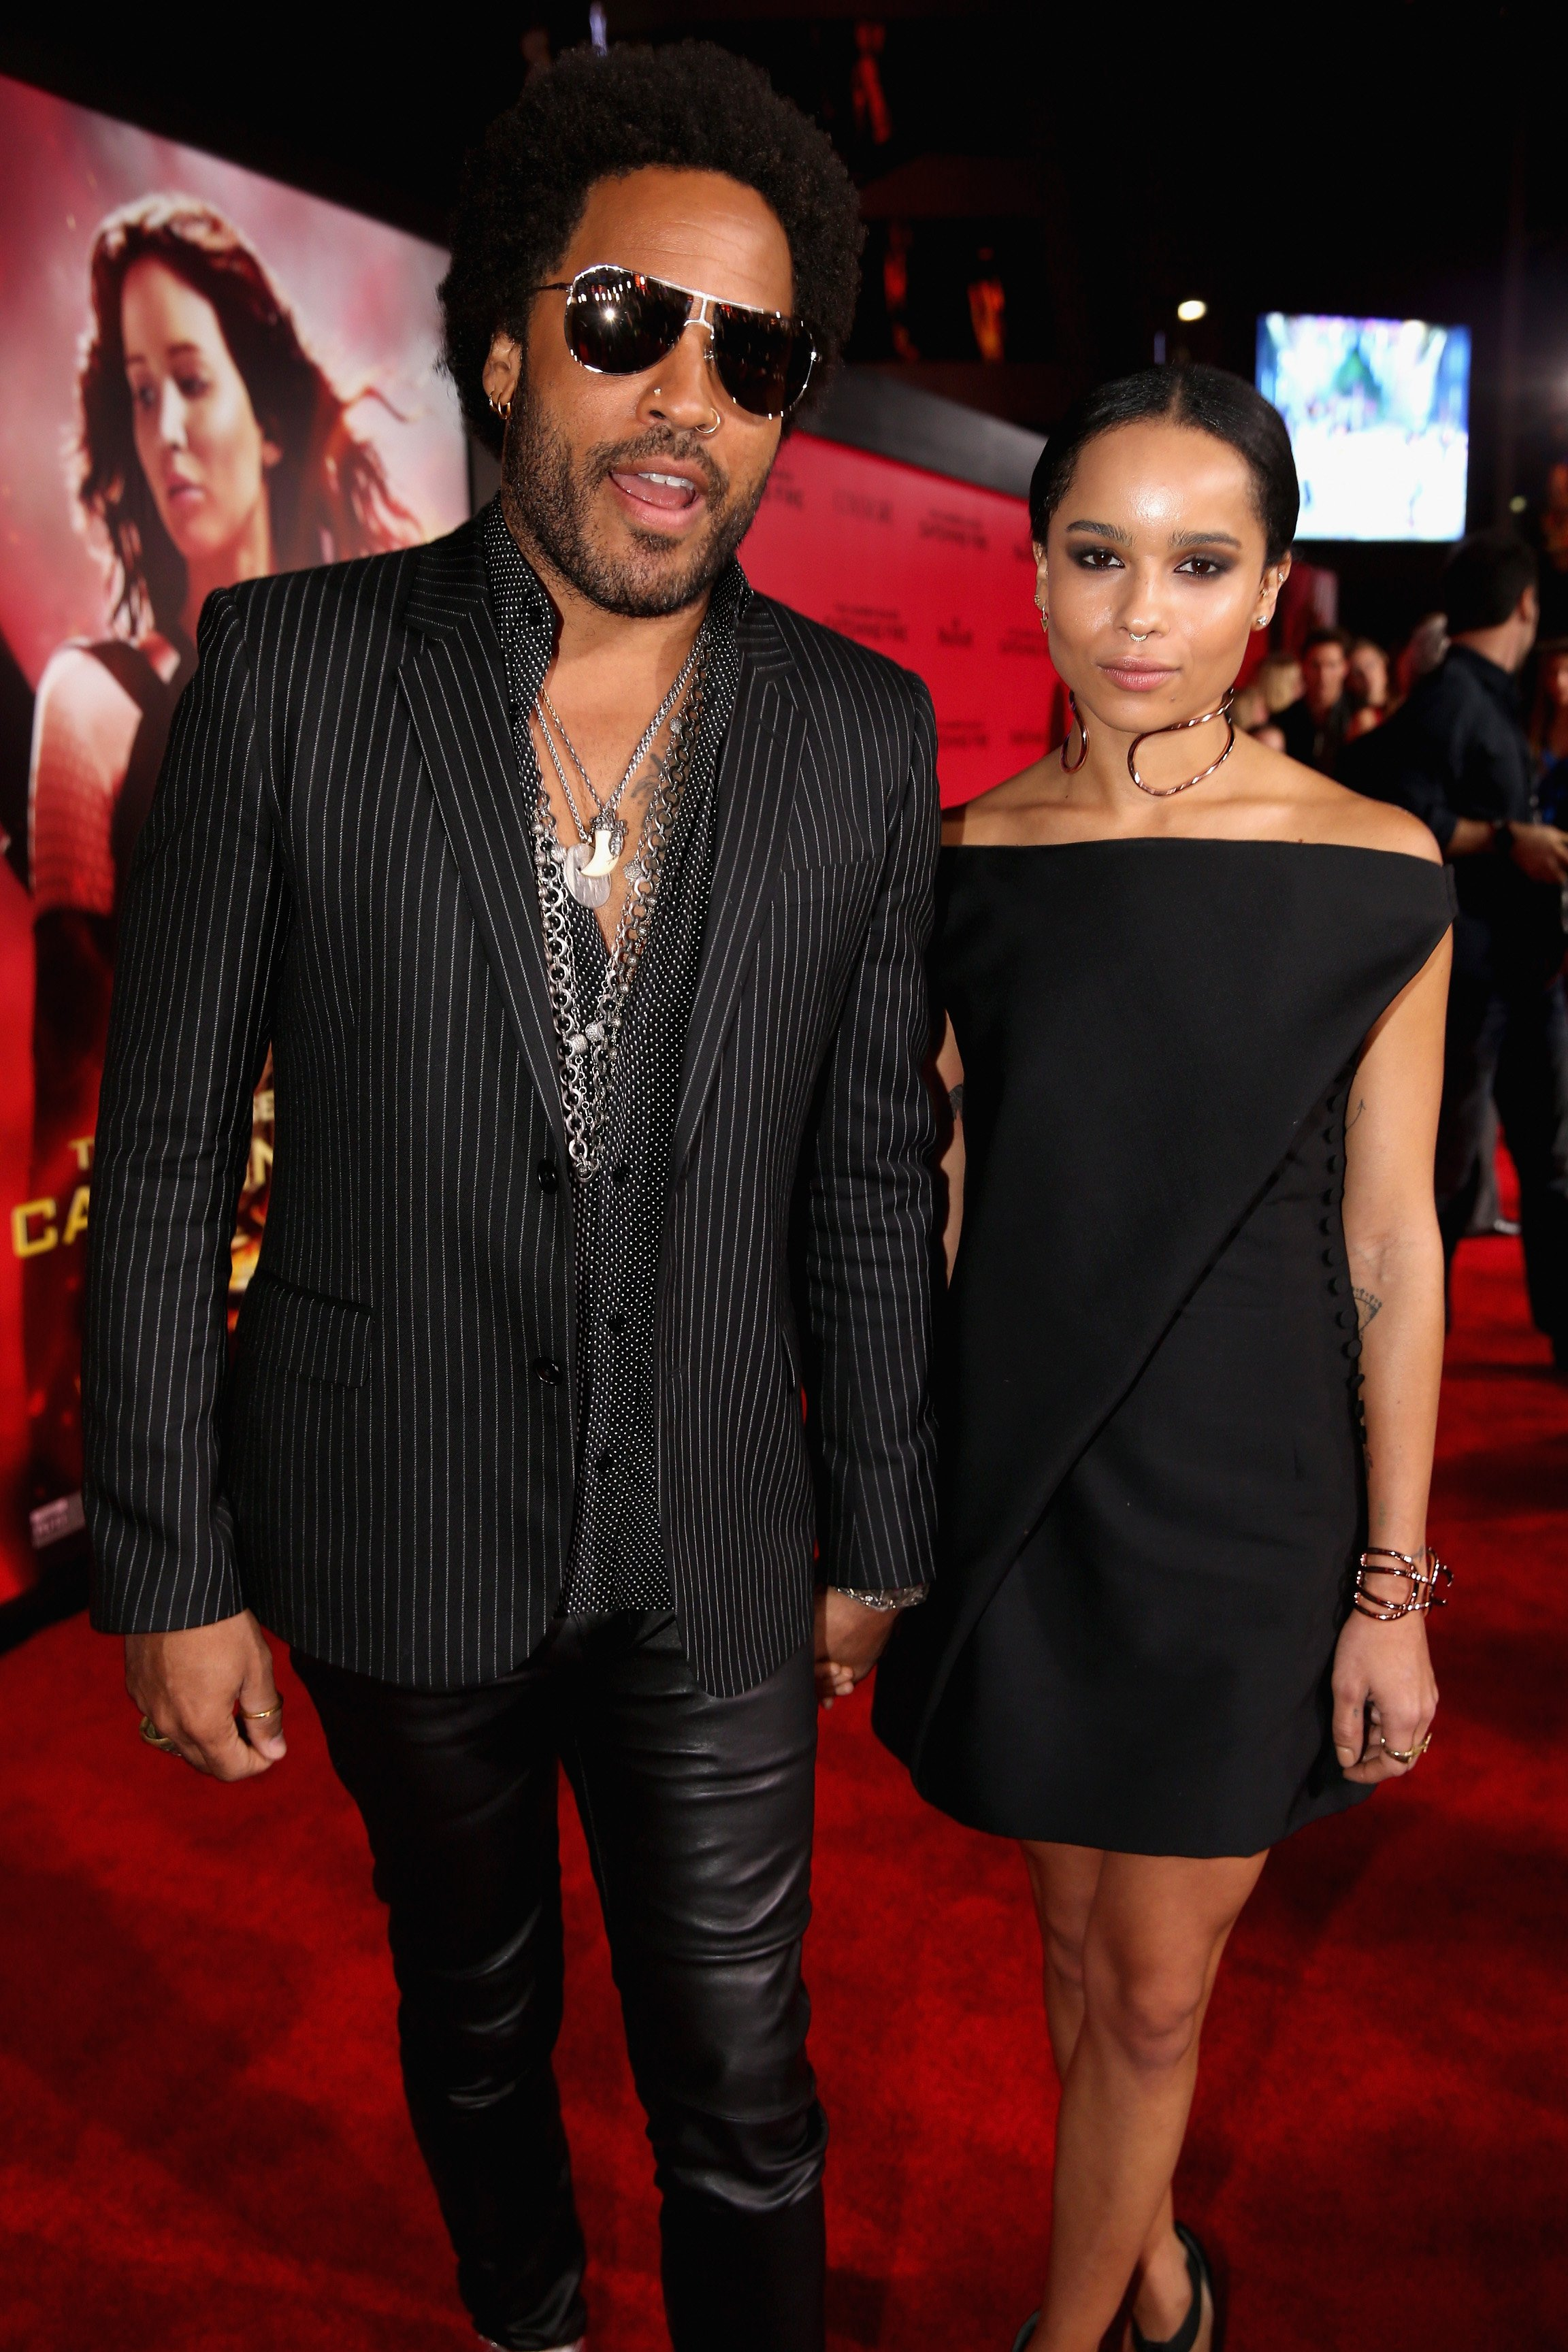 """Lenny Kravitz and daughter Zoe Kravitz attend premiere of  """"The Hunger Games: Catching Fire"""" - on November 18, 2013 